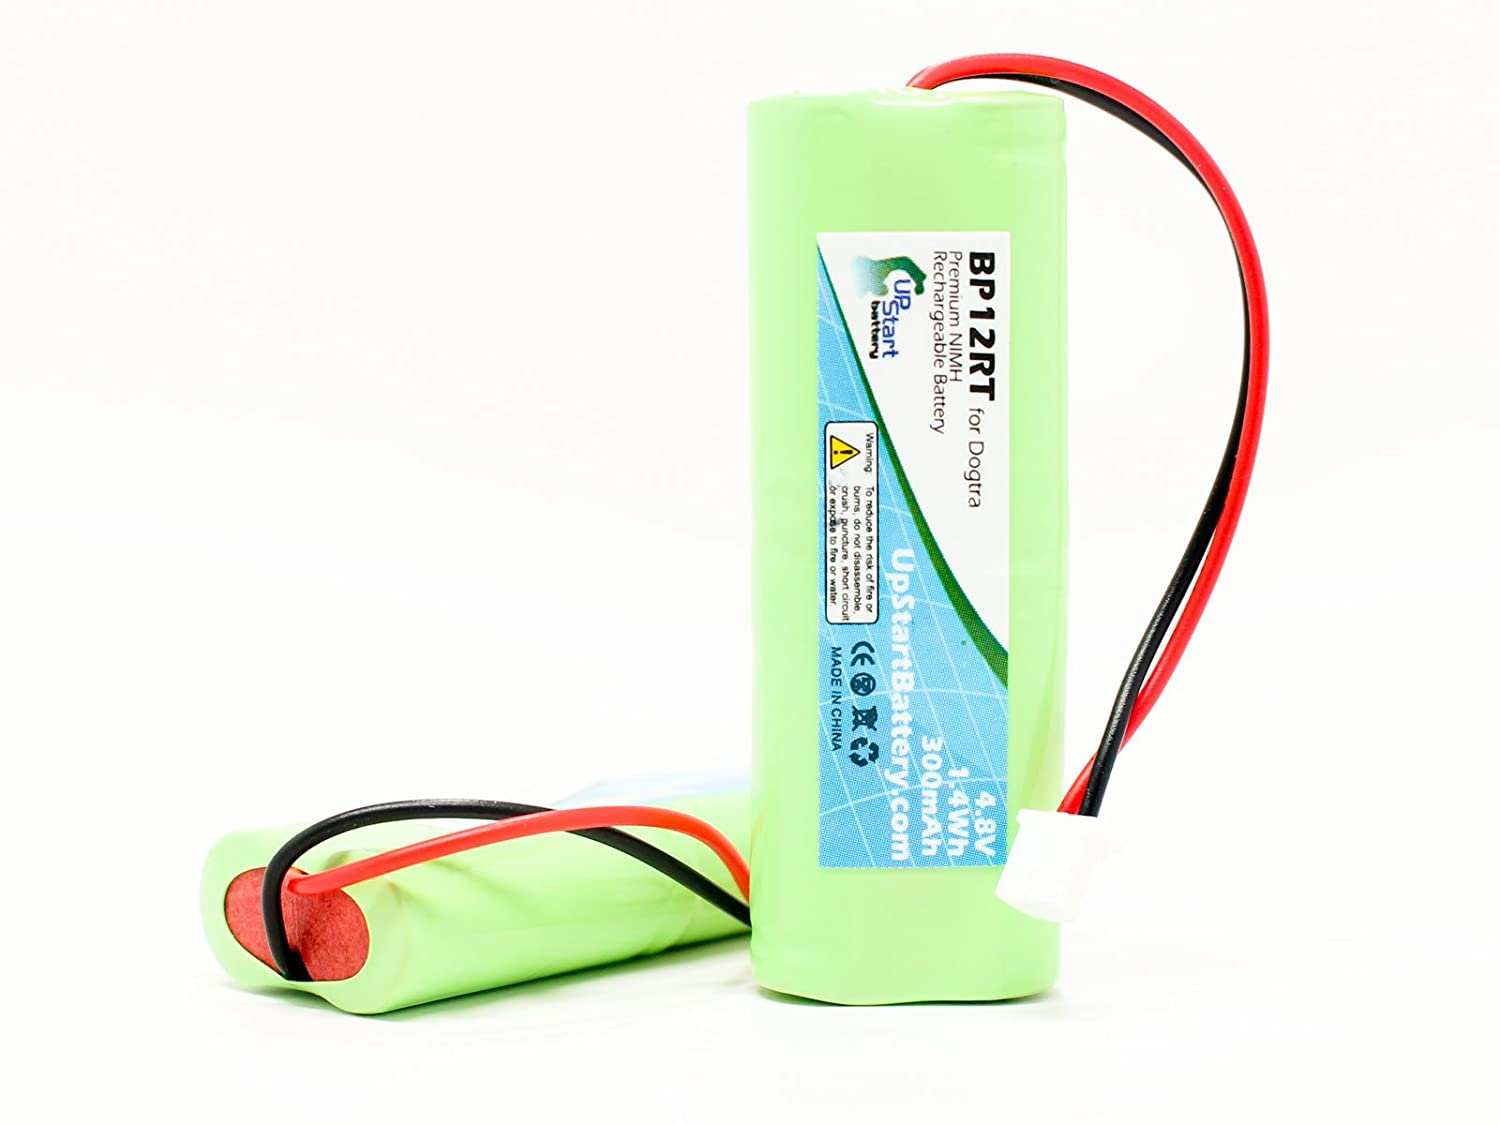 2x Pack - Dogtra 1900 NCP Battery - Replacement for Dogtra BP12RT Dog Training Collar Receiver Battery (300mAh, 4.8V, NI-MH)